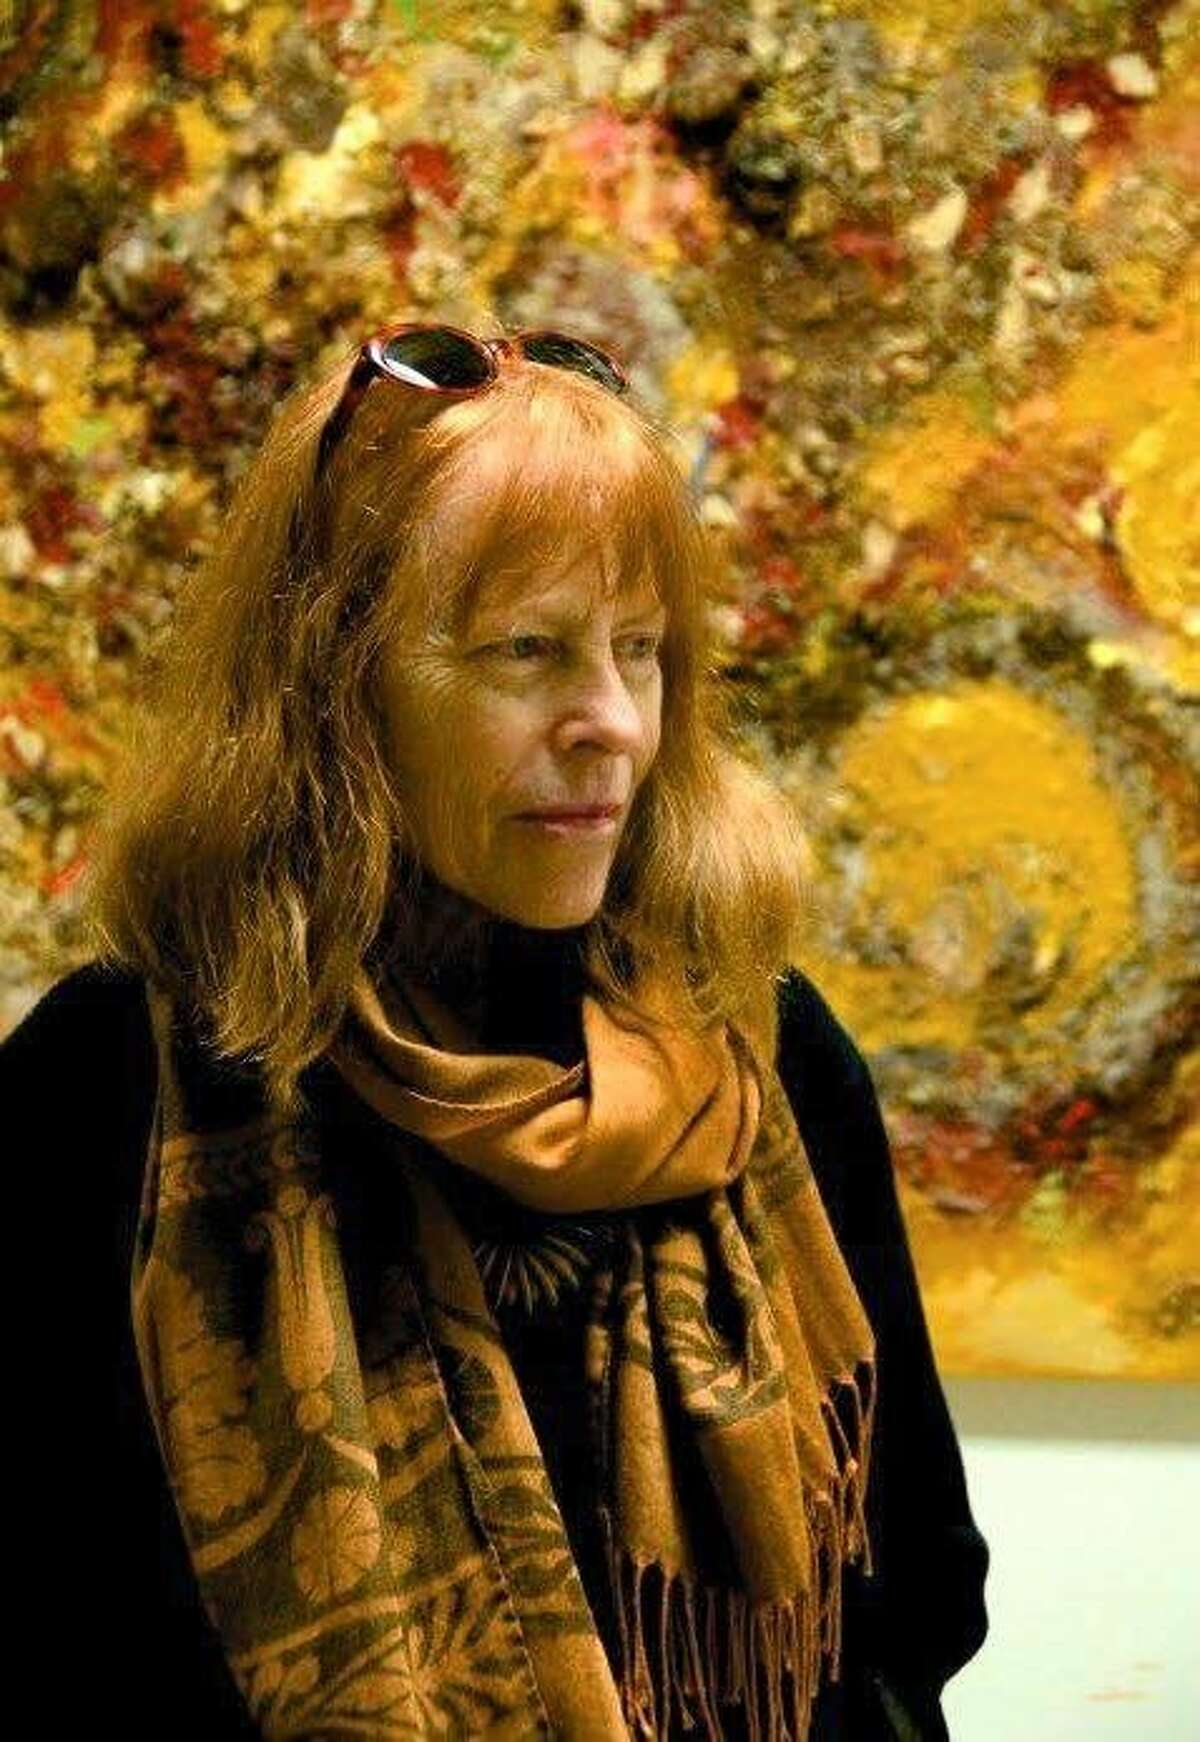 """Marlene Aron, 75, died after getting struck by a flatbed truck towing a trailer on Wednesday, Sept. 19, 2018. She was a San Francisco-based artist and member of the art collective """"Code and Canvas."""""""